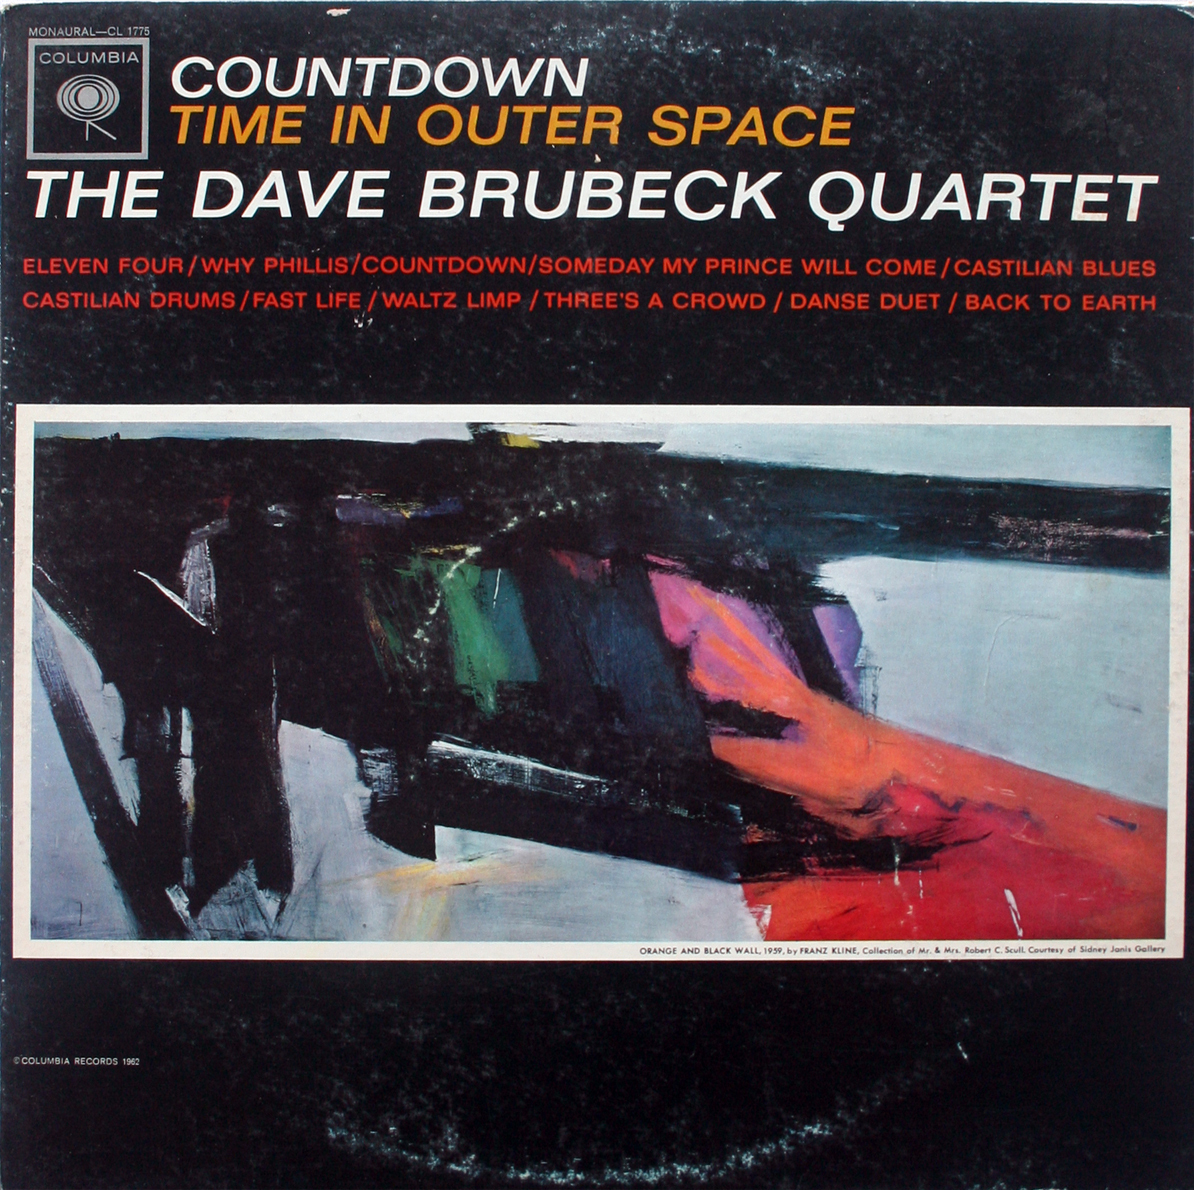 Dave Brubeck - Countdown Time In Outer Space MONO LP